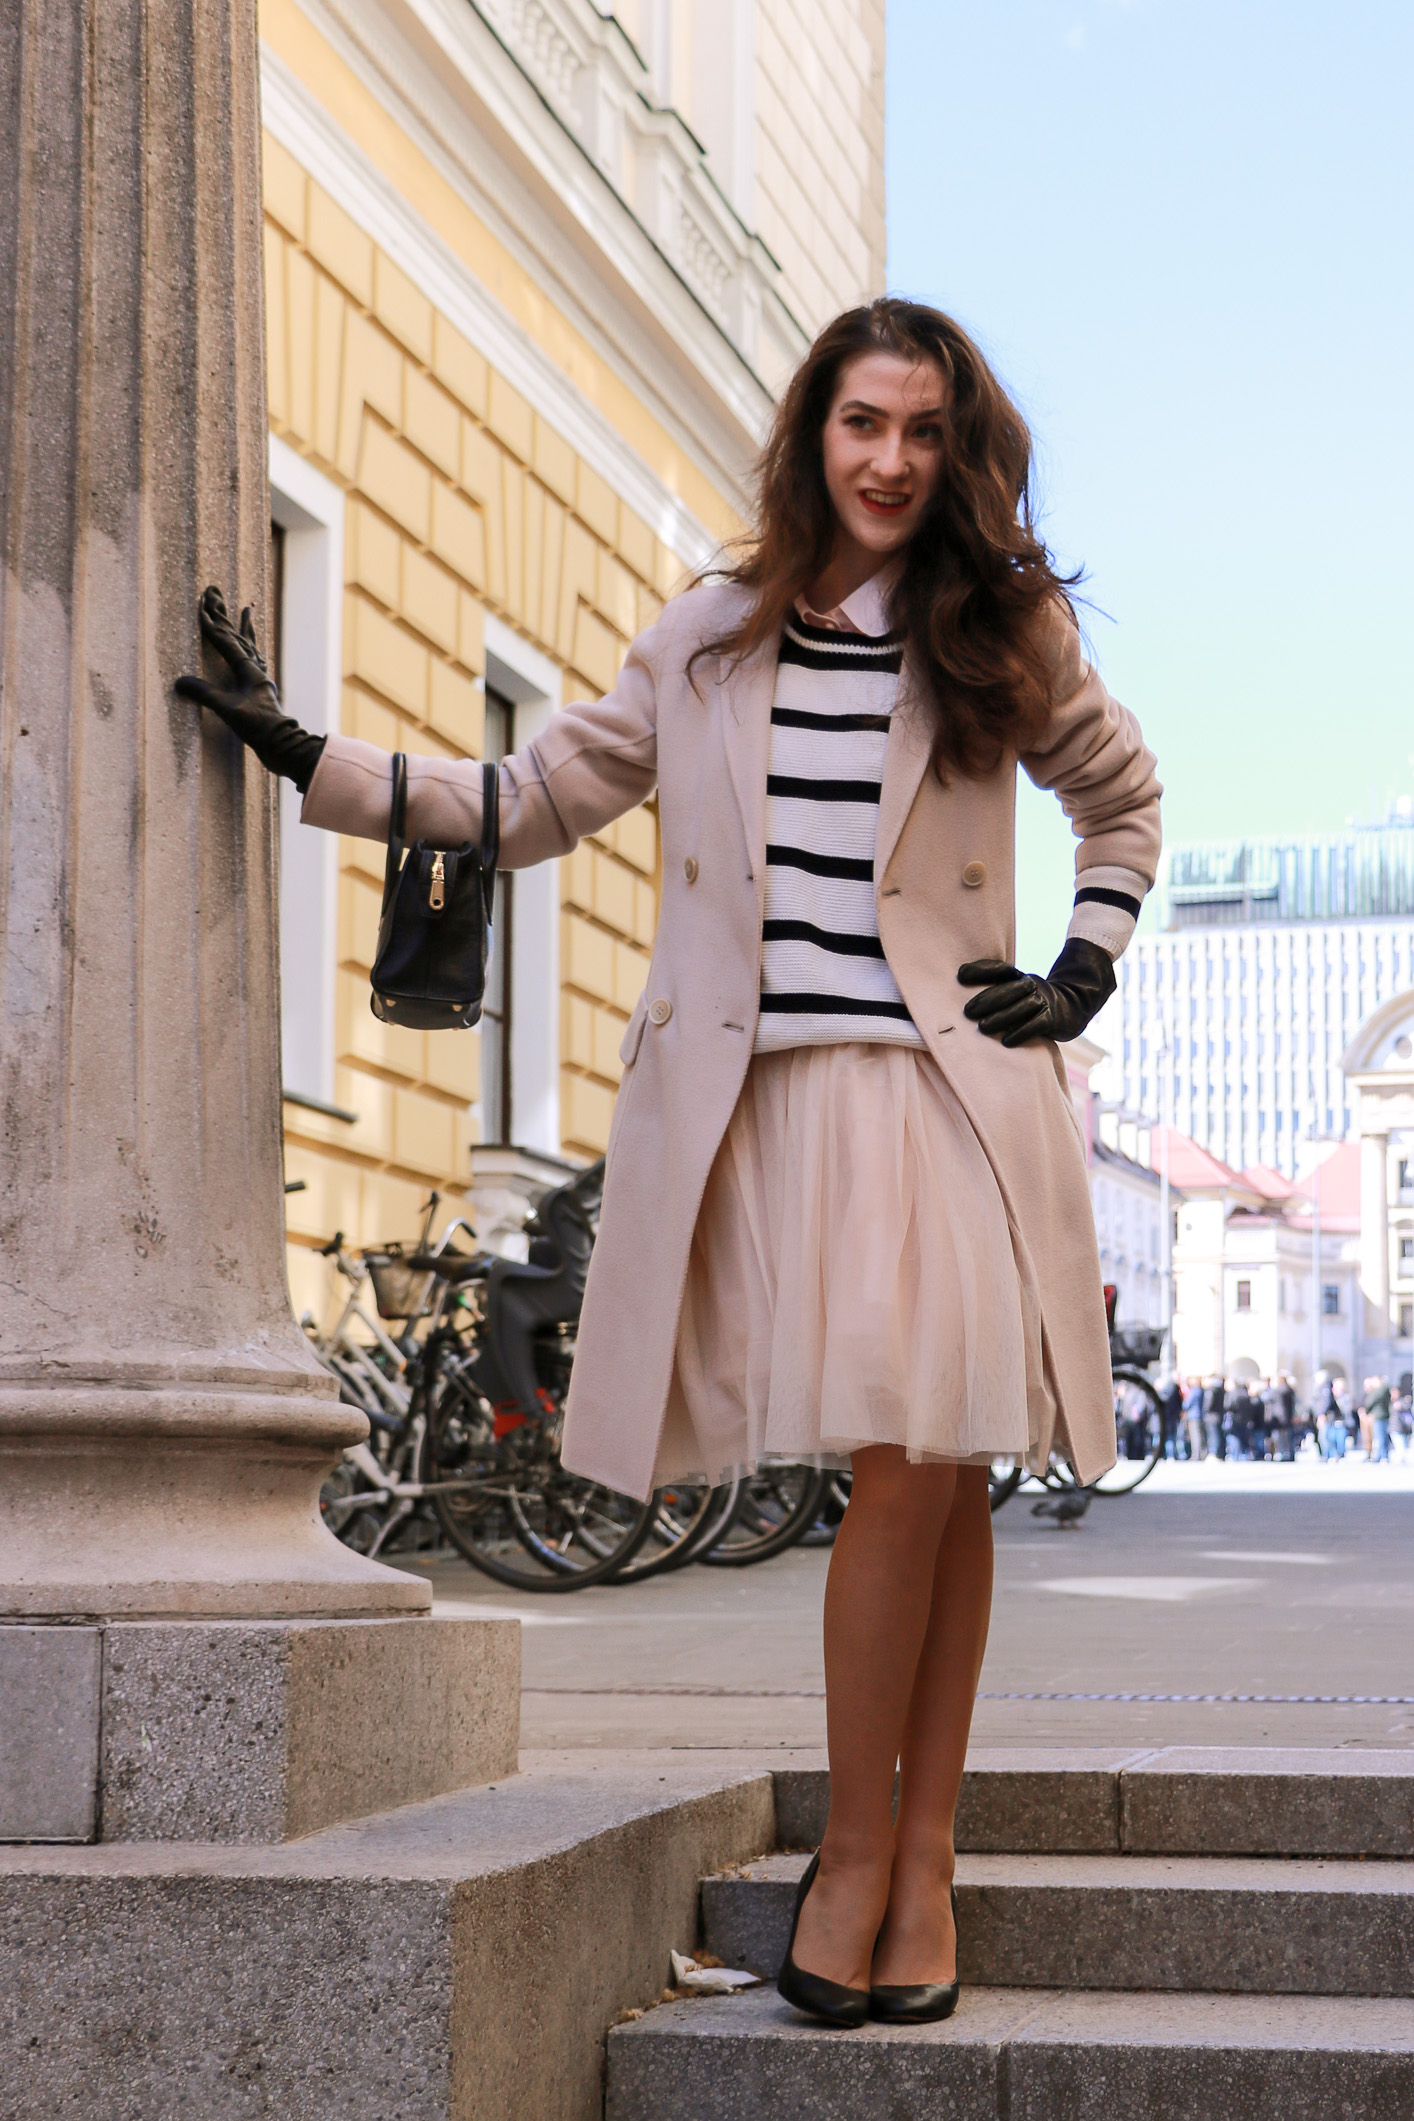 Fashion blogger Veronika Lipar of Brunette From Wall Street wearing zara dress and striped top with pink coat